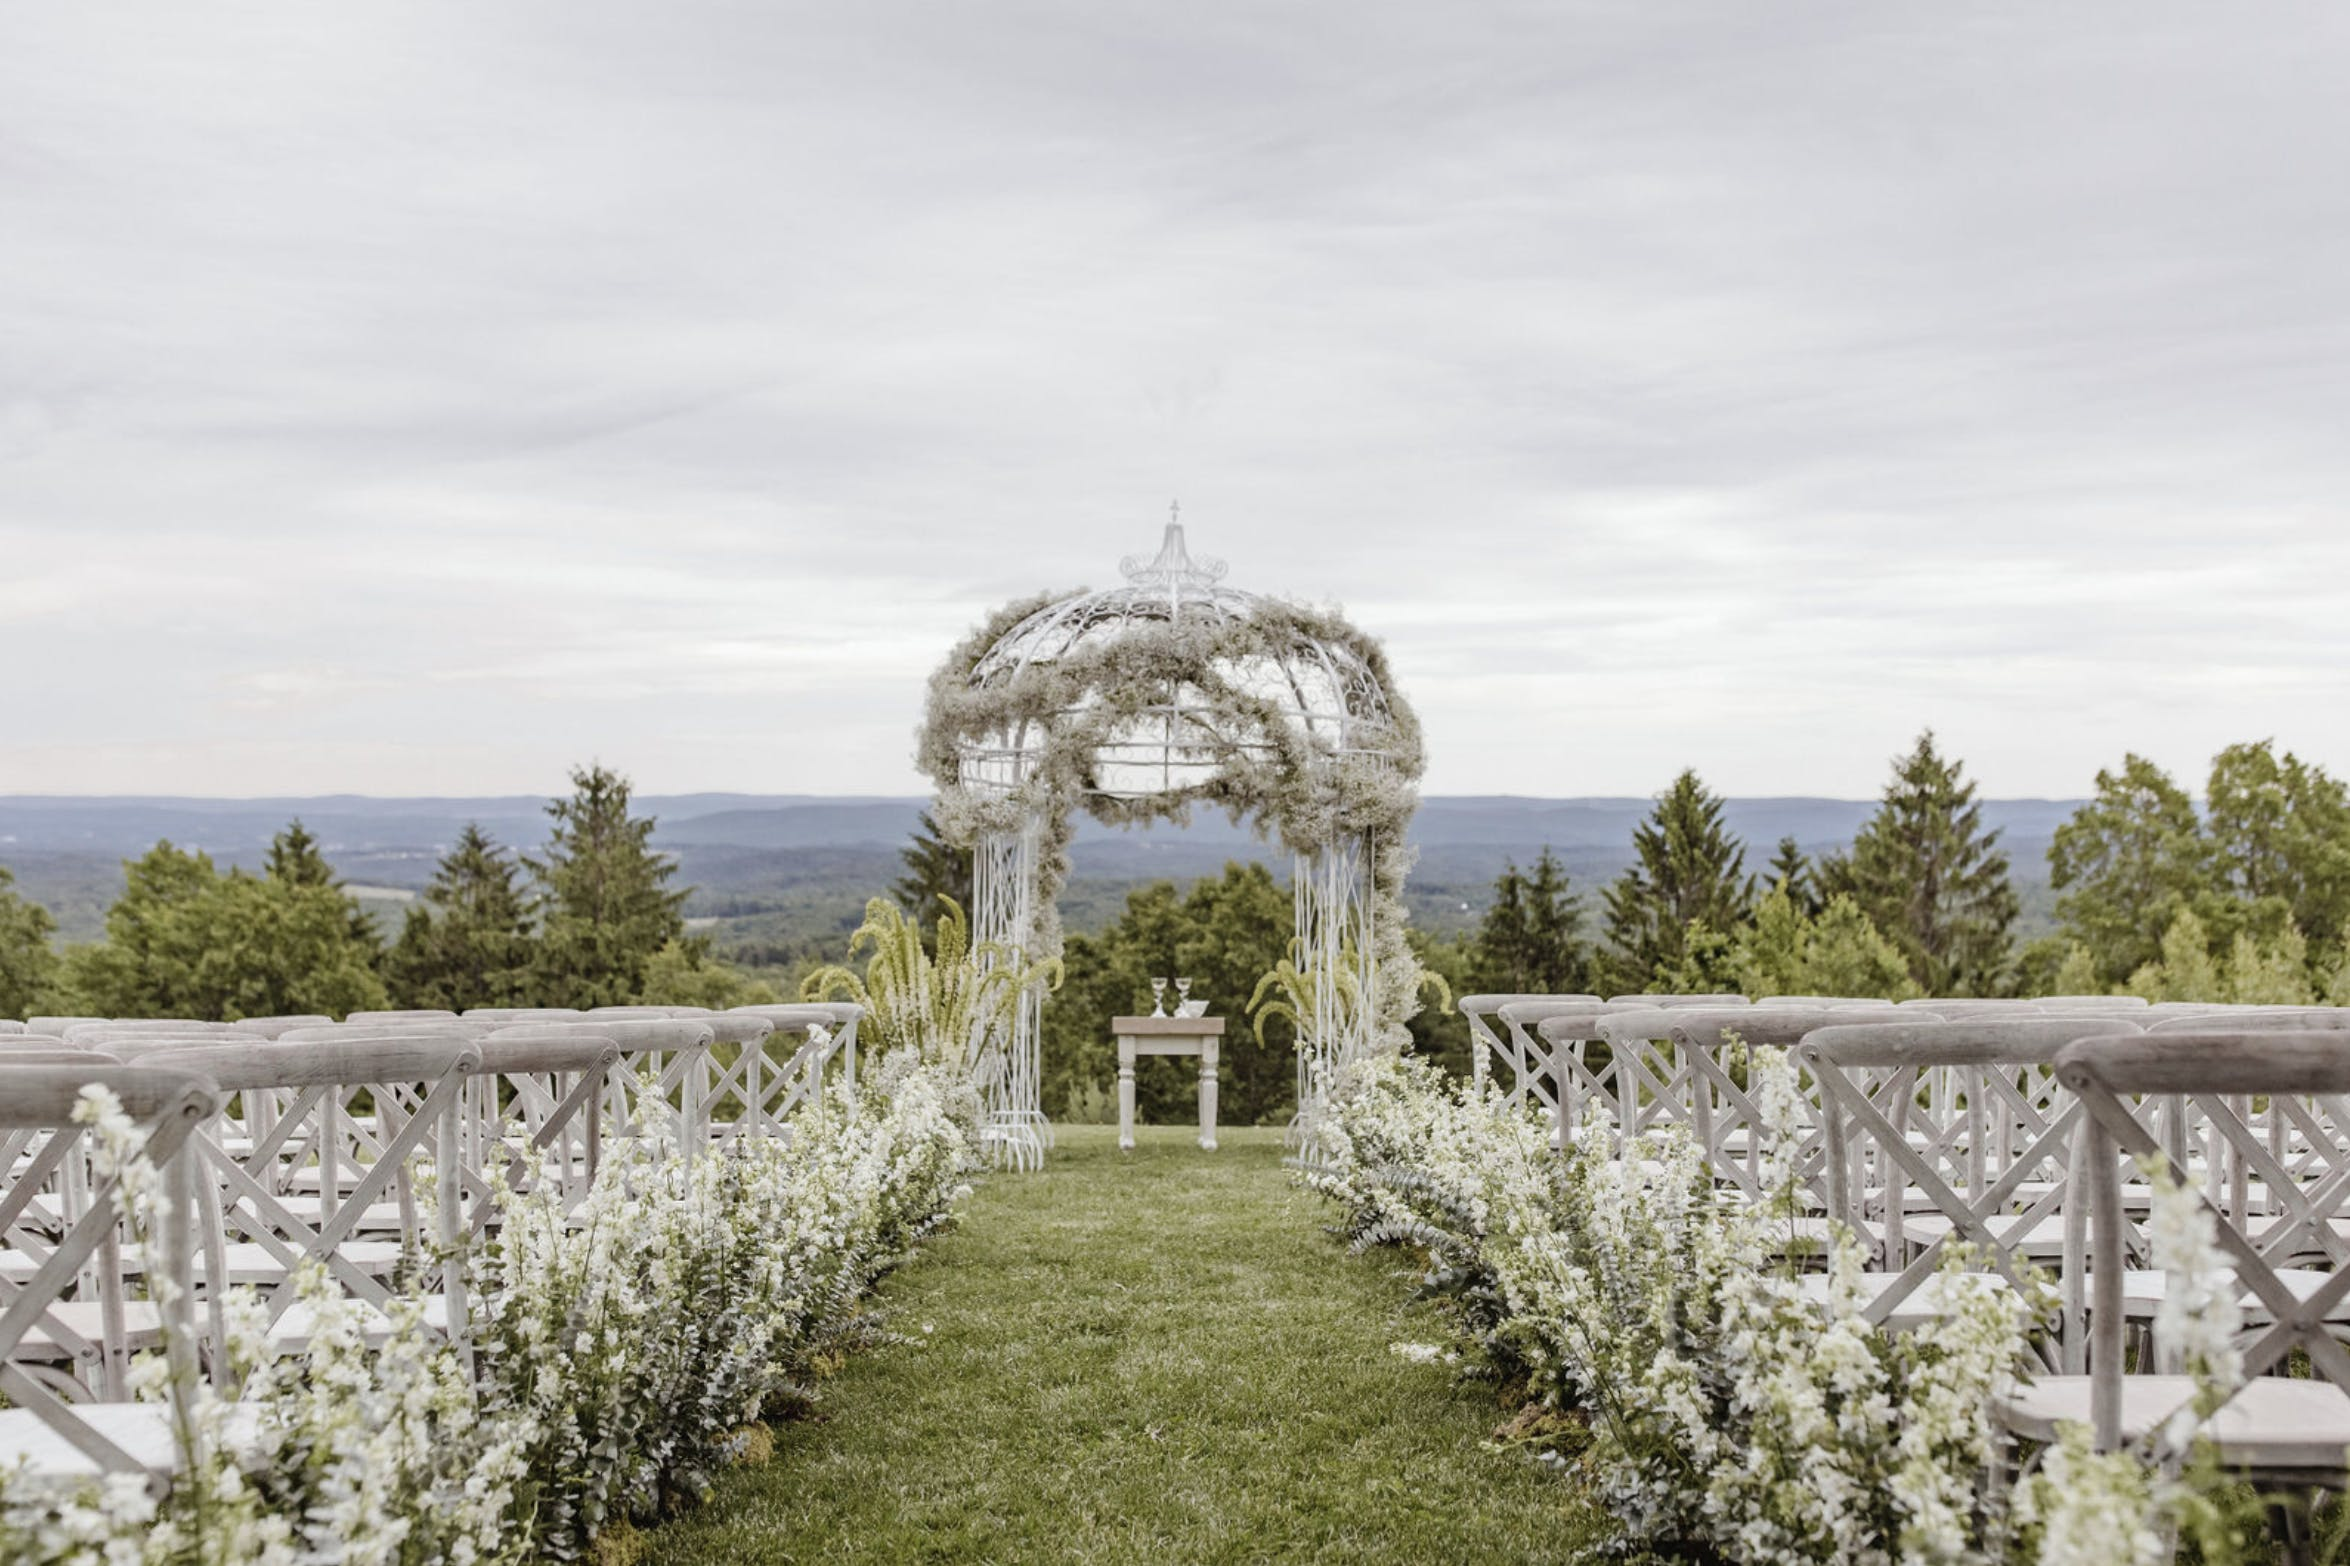 A White Filigree Wedding Arbor Wound with a Garland of Baby's Breath   PartySlate